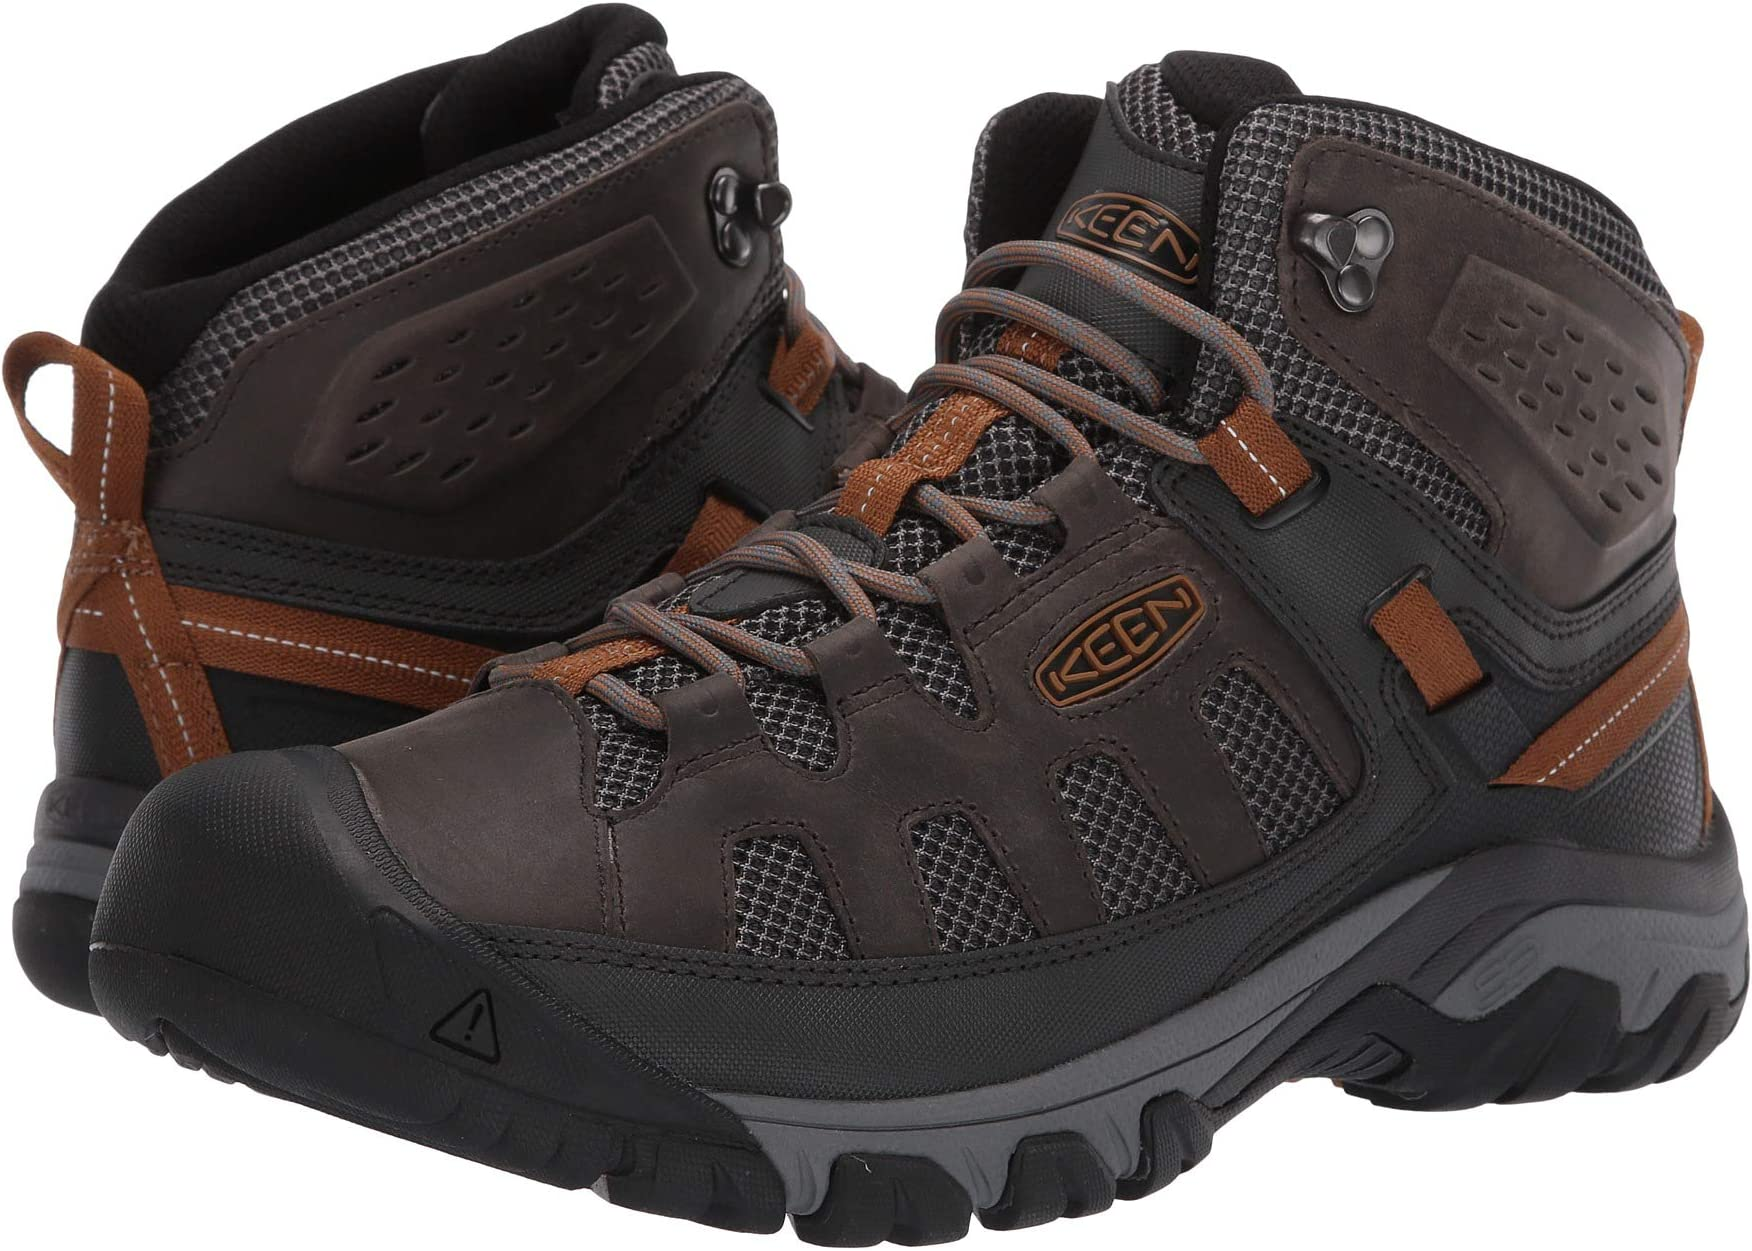 aeed3b831a1 Keen Shoes, Sandals, Boots, and Keen Utility | Zappos.com